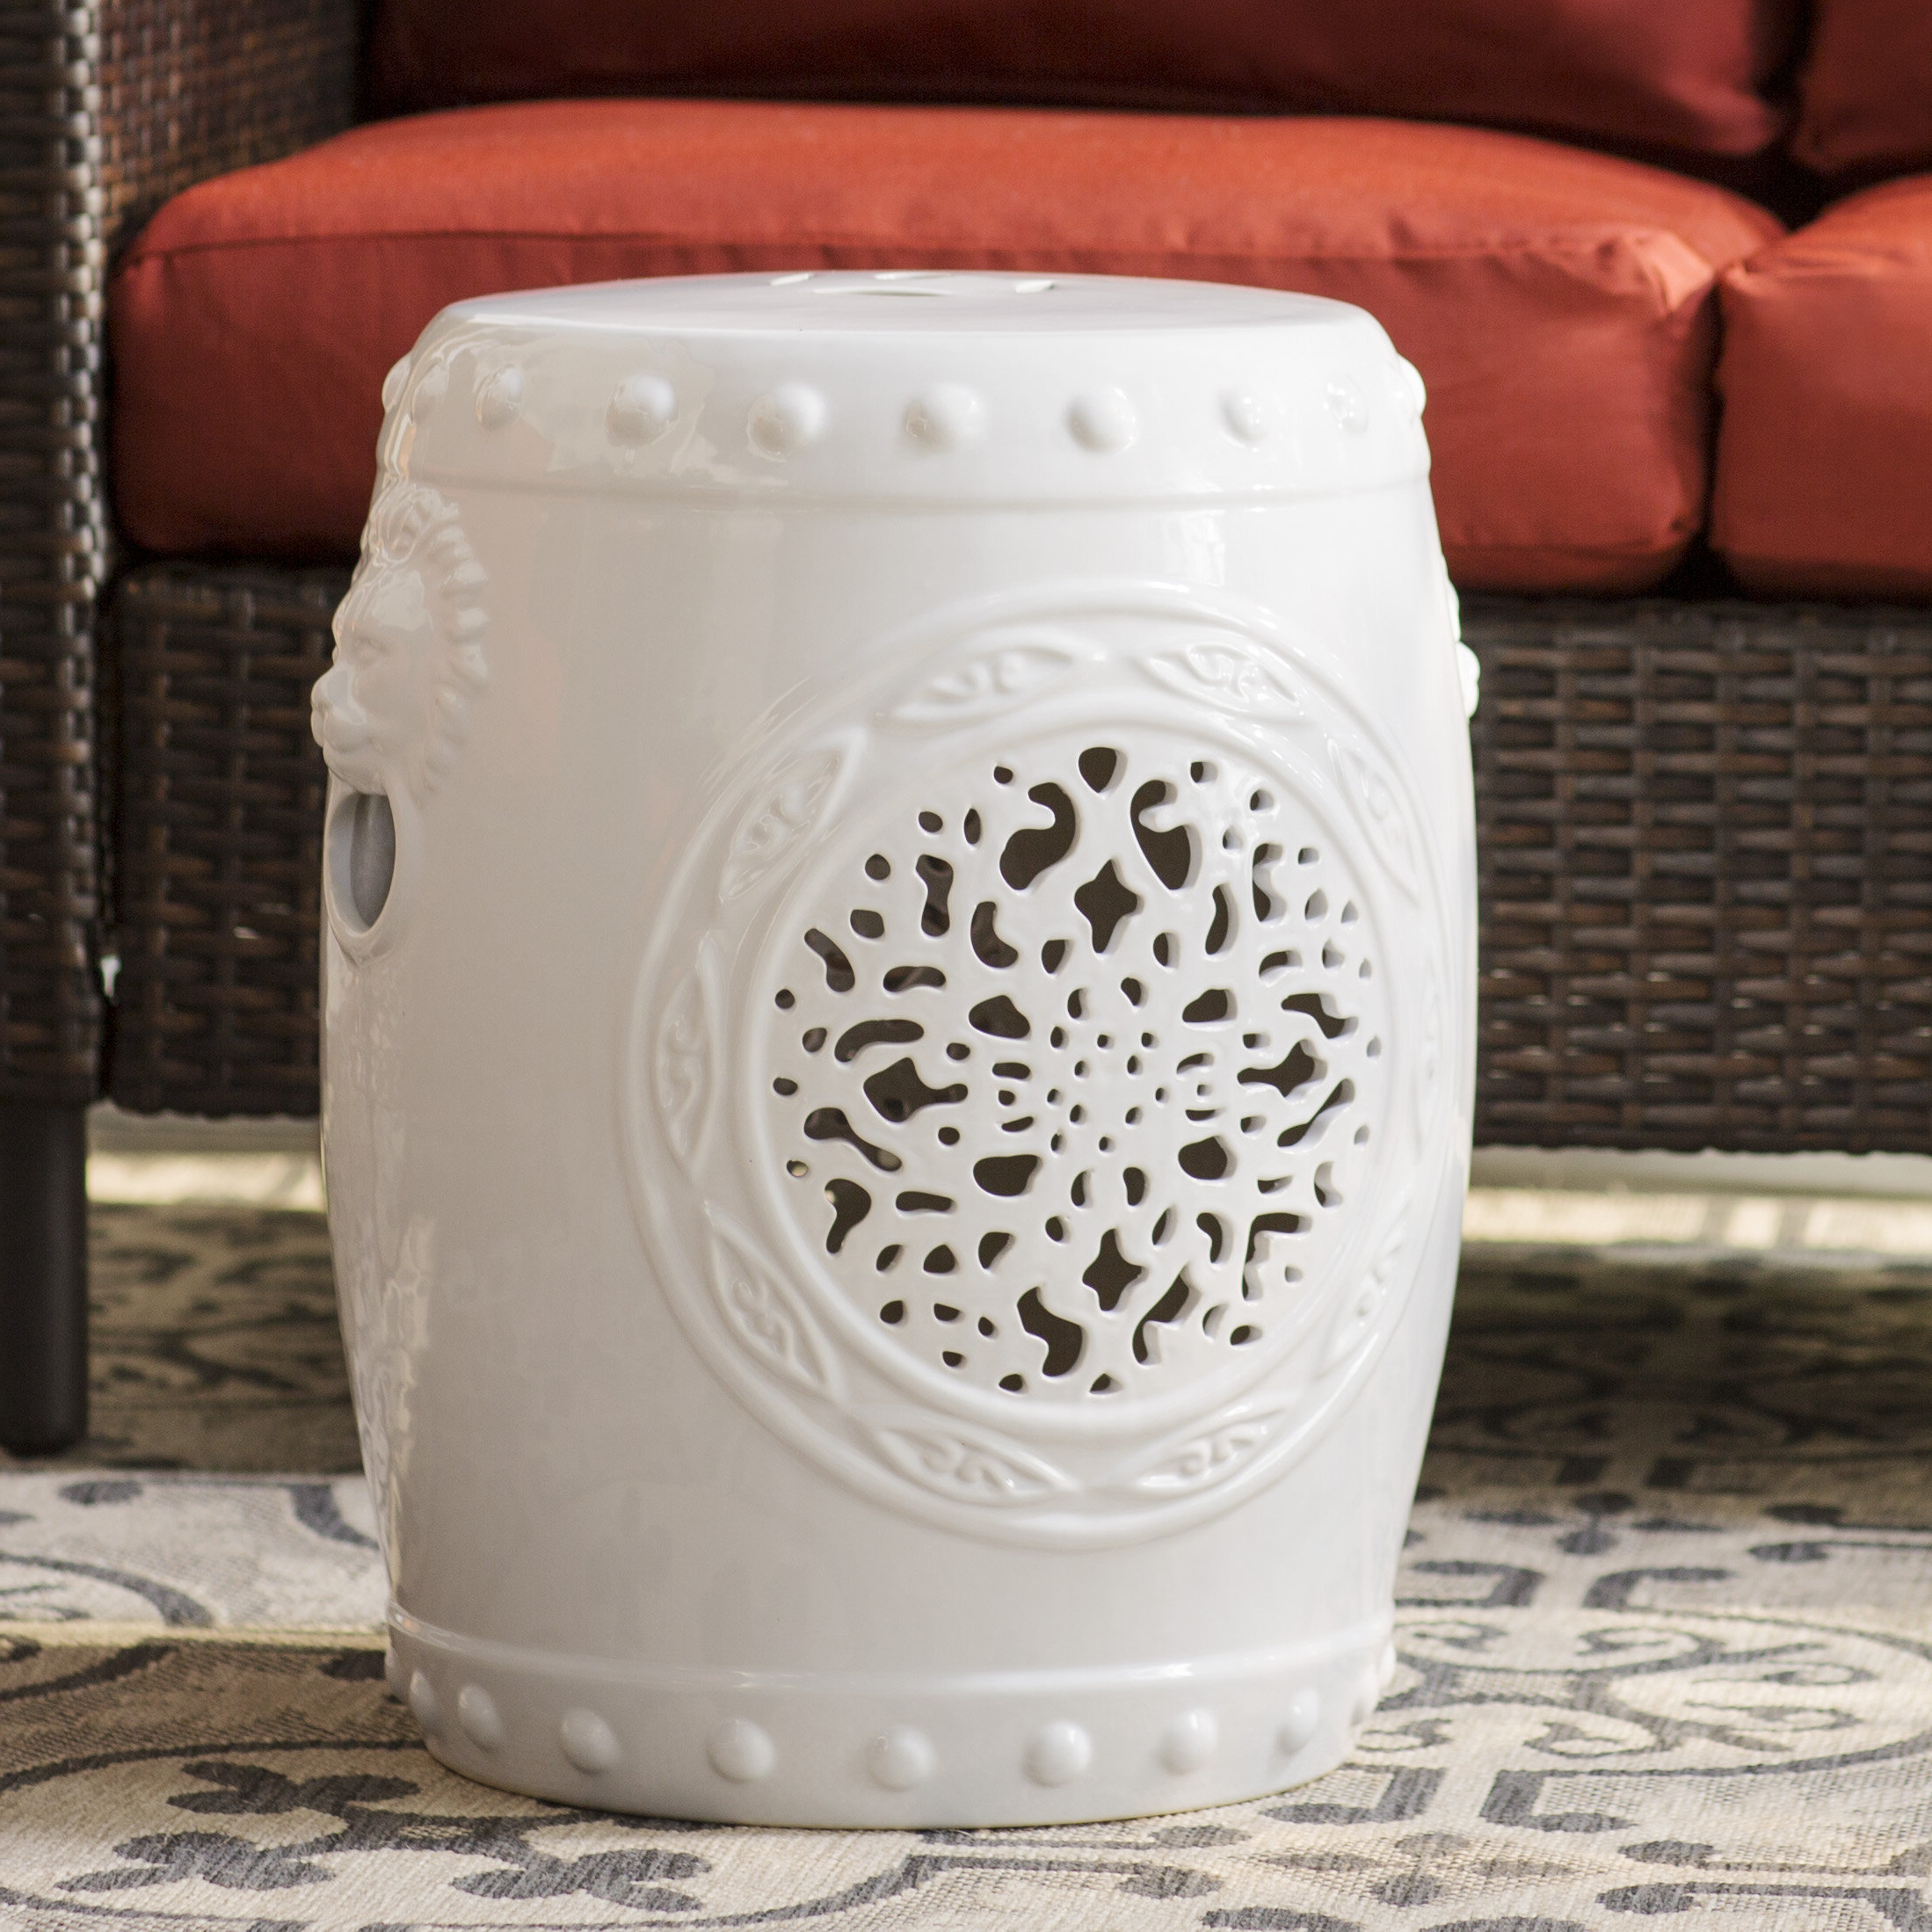 2020 Brode Ceramic Garden Stools Throughout Blue & White Garden Stools You'll Love In (View 12 of 31)